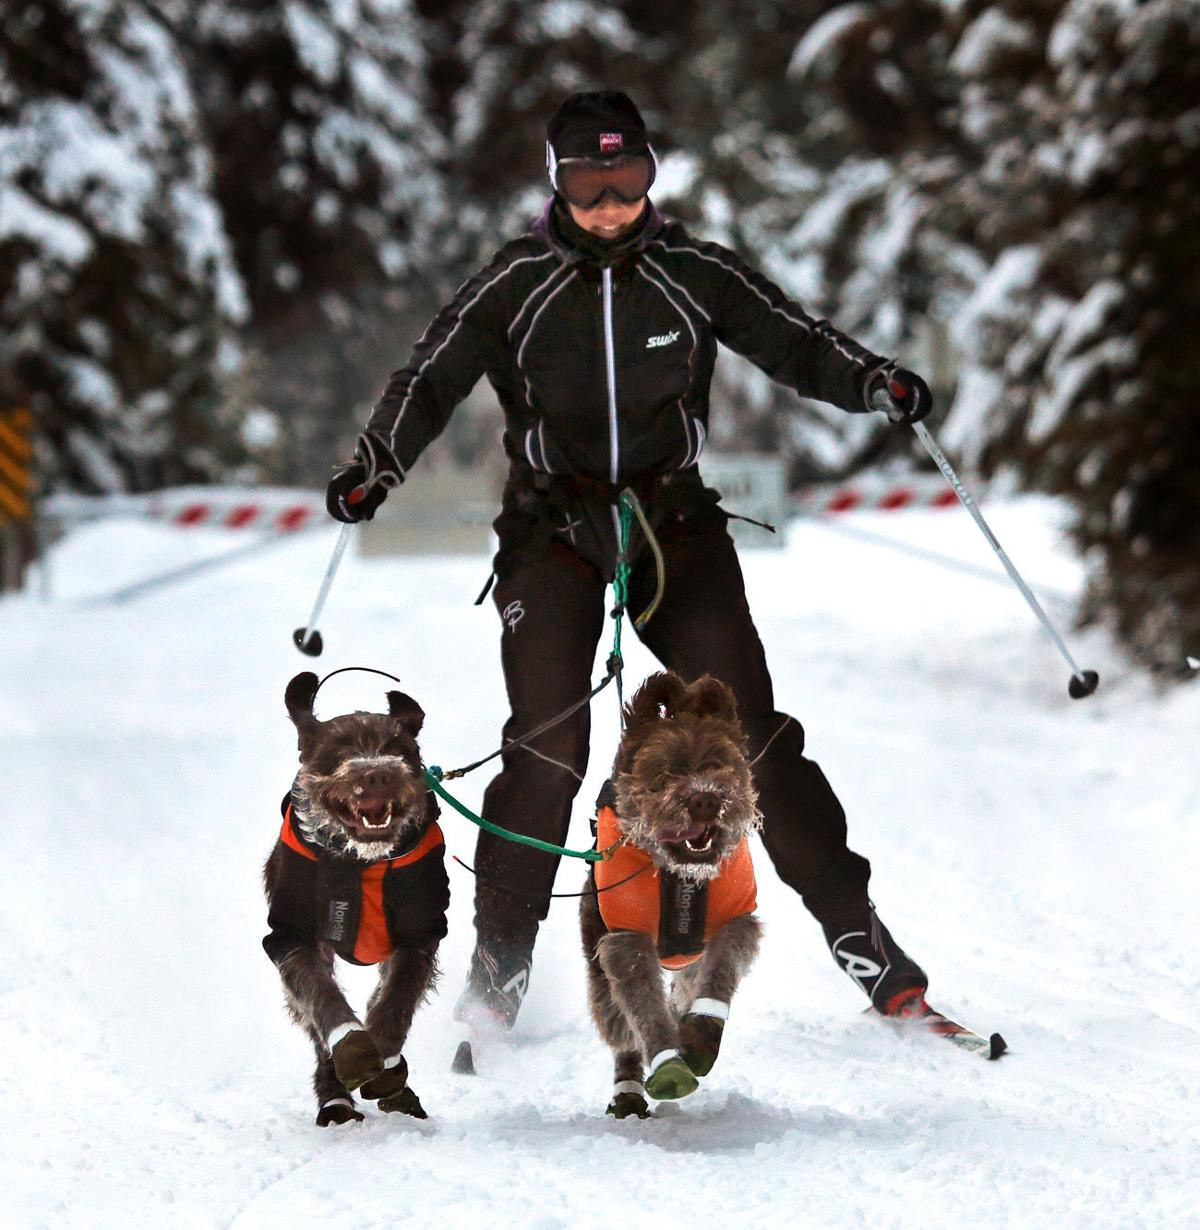 Teresa Petterson 2, skijoring, Darby Dog Derby